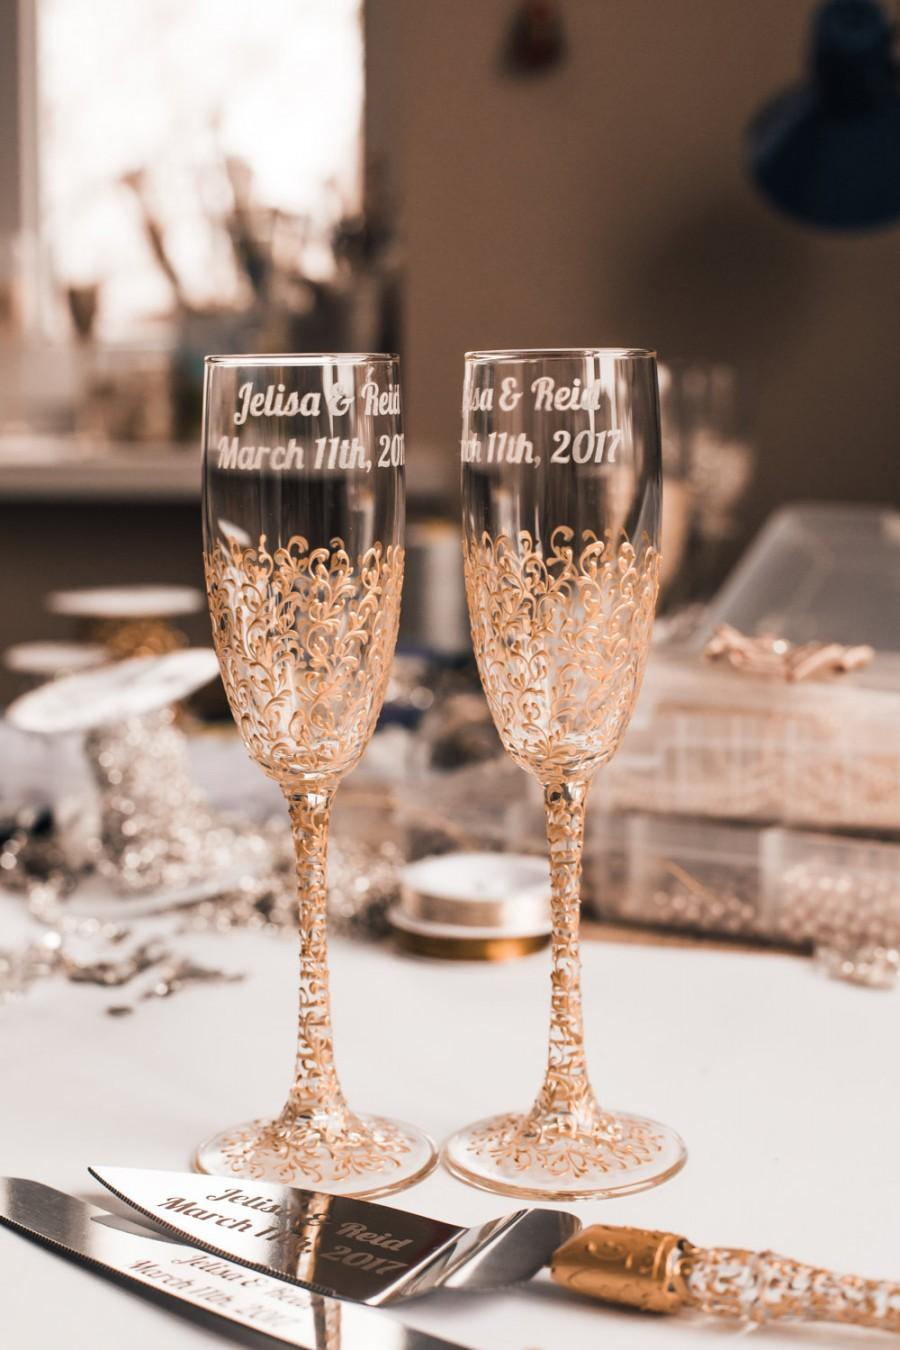 Hochzeit - personalized wedding glasses Toasting flutes gold Glasses bride and groom Champagne glasses gold Wedding flutes Toasting flutes set of 2